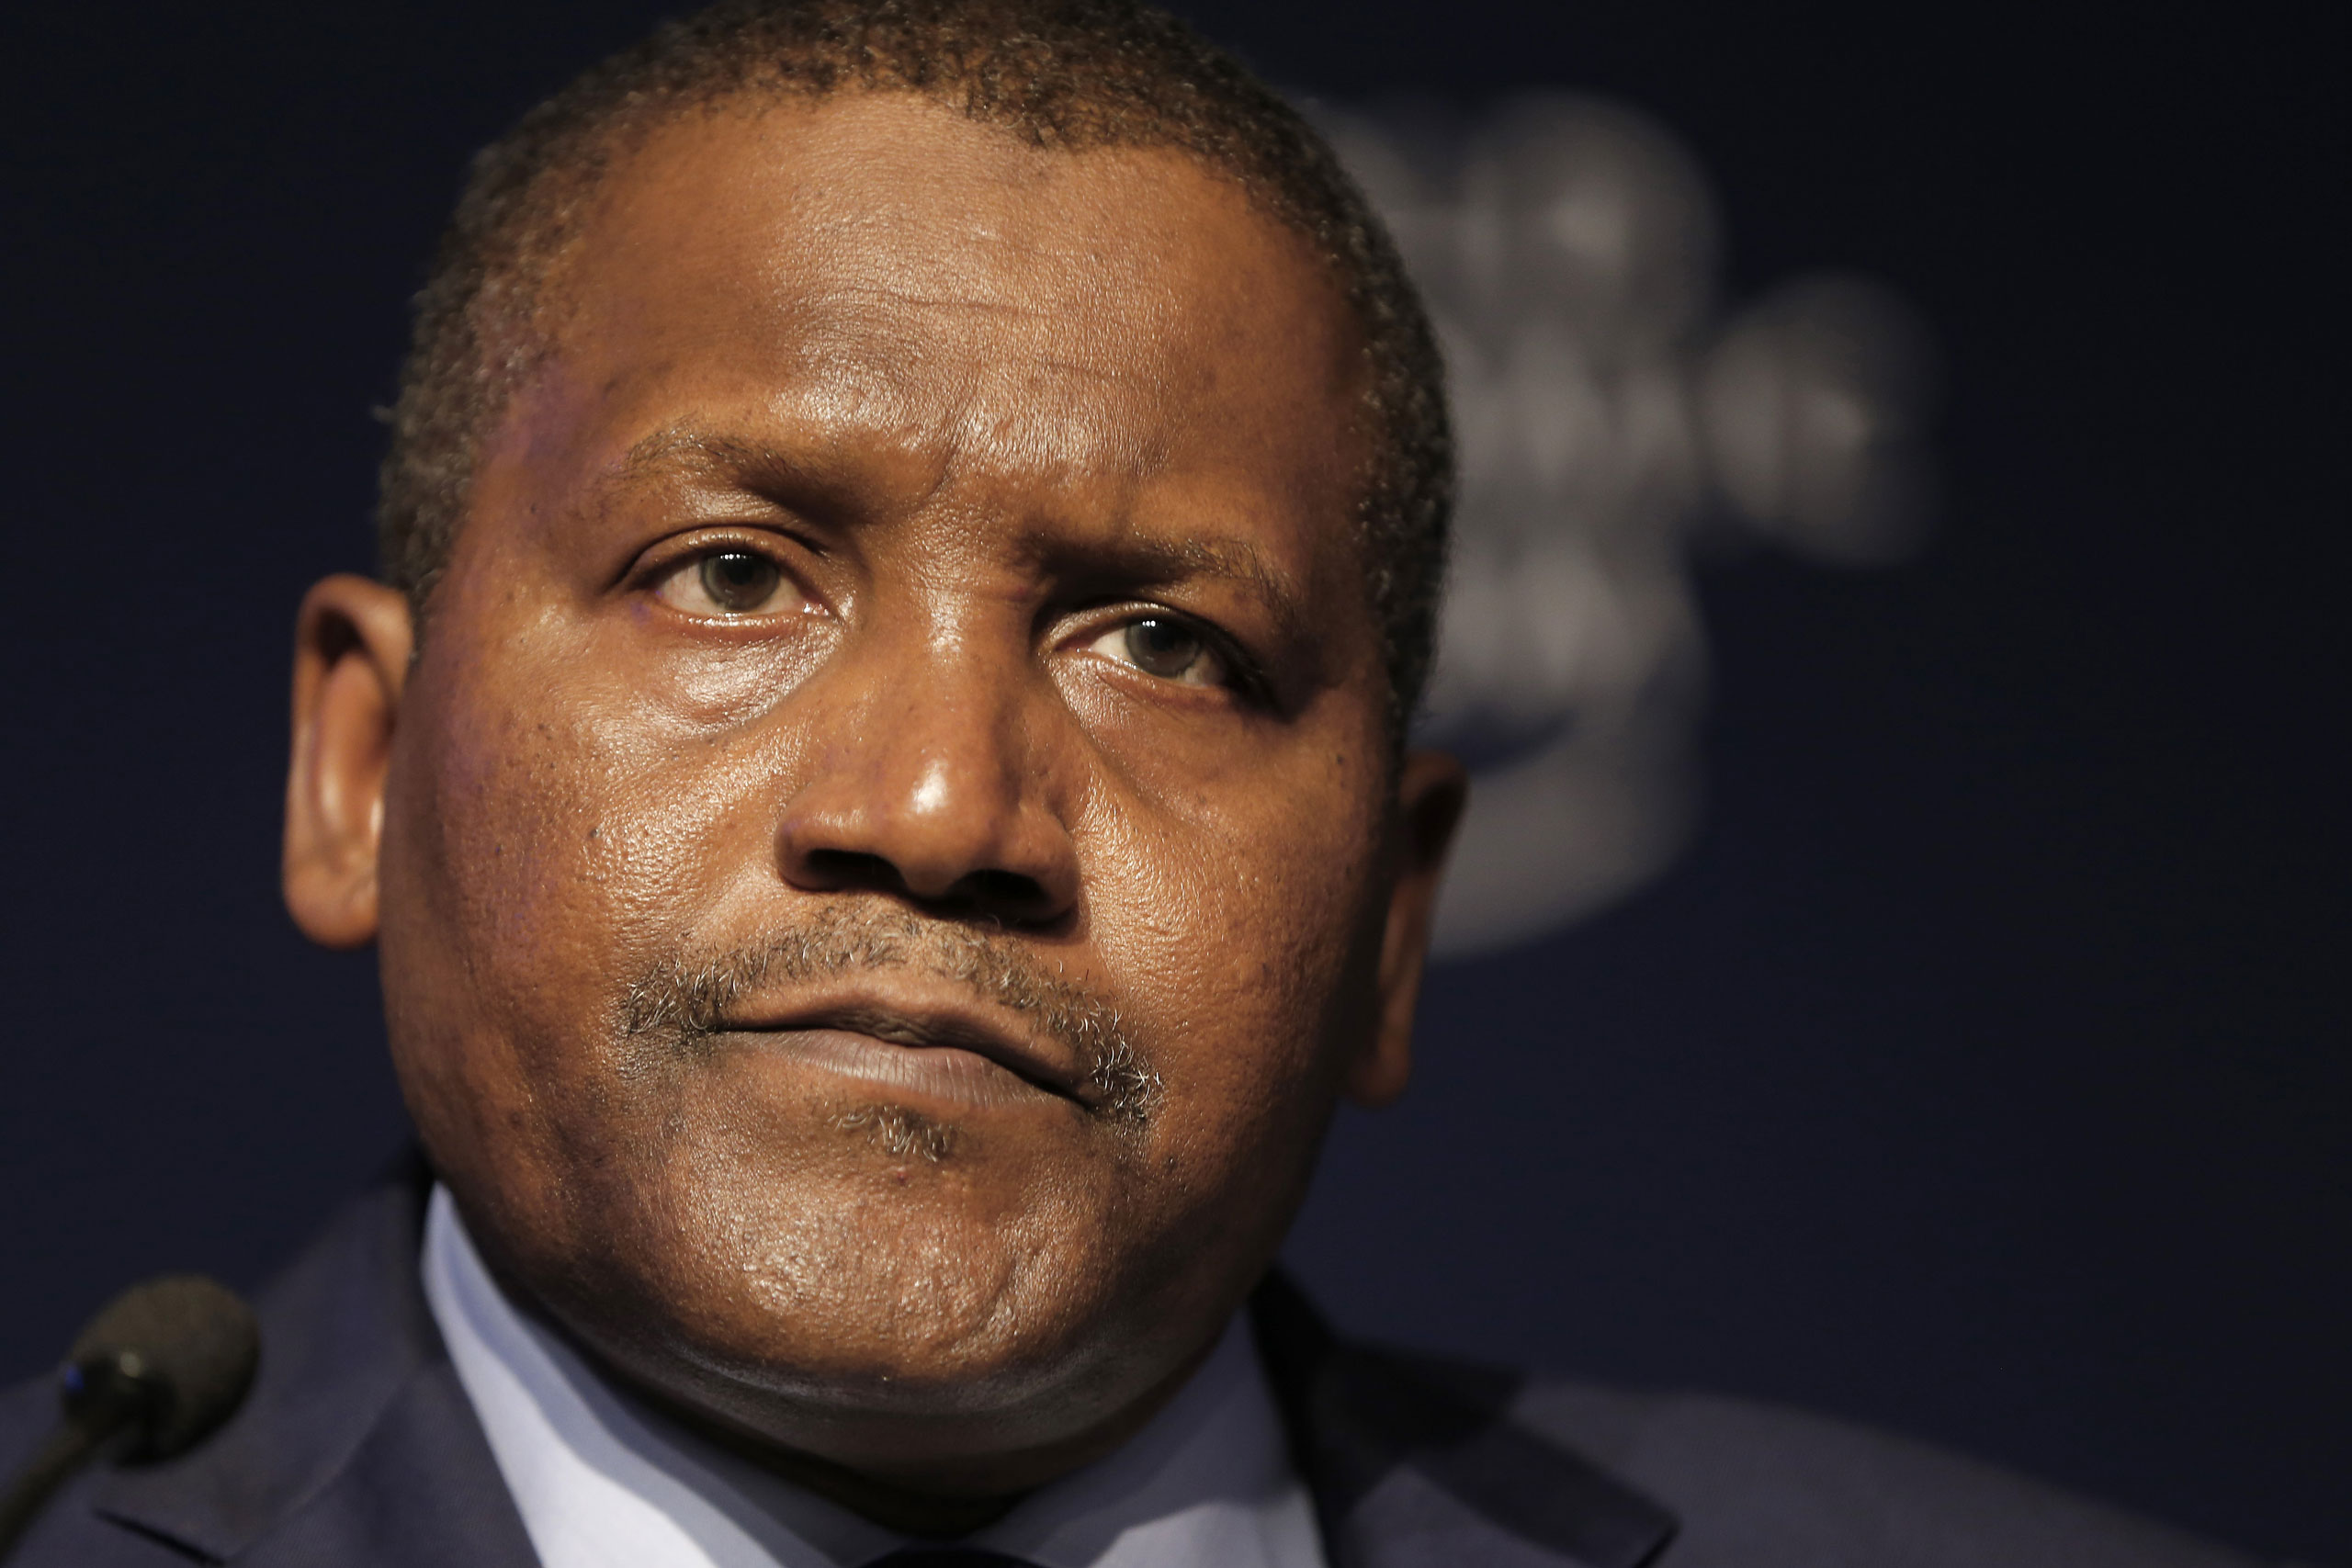 Aliko Dangote, billionaire and chief executive officer of Dangote Group, pauses during a session on day two of the World Economic Forum (WEF) in Davos, Switzerland, Jan. 22, 2015.